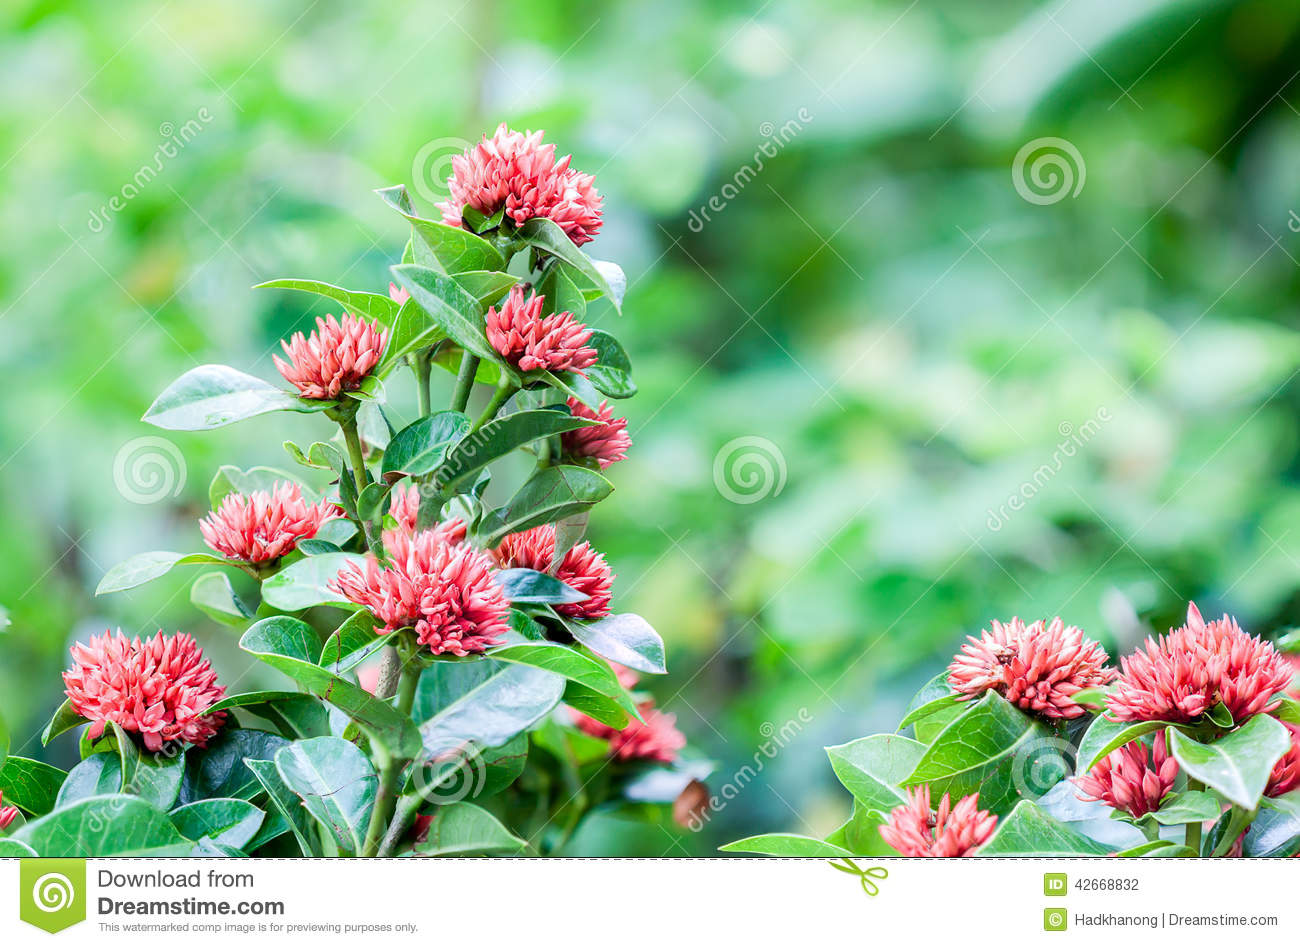 West indian jasmine flower stock photo image of nature 42668832 download west indian jasmine flower stock photo image of nature 42668832 izmirmasajfo